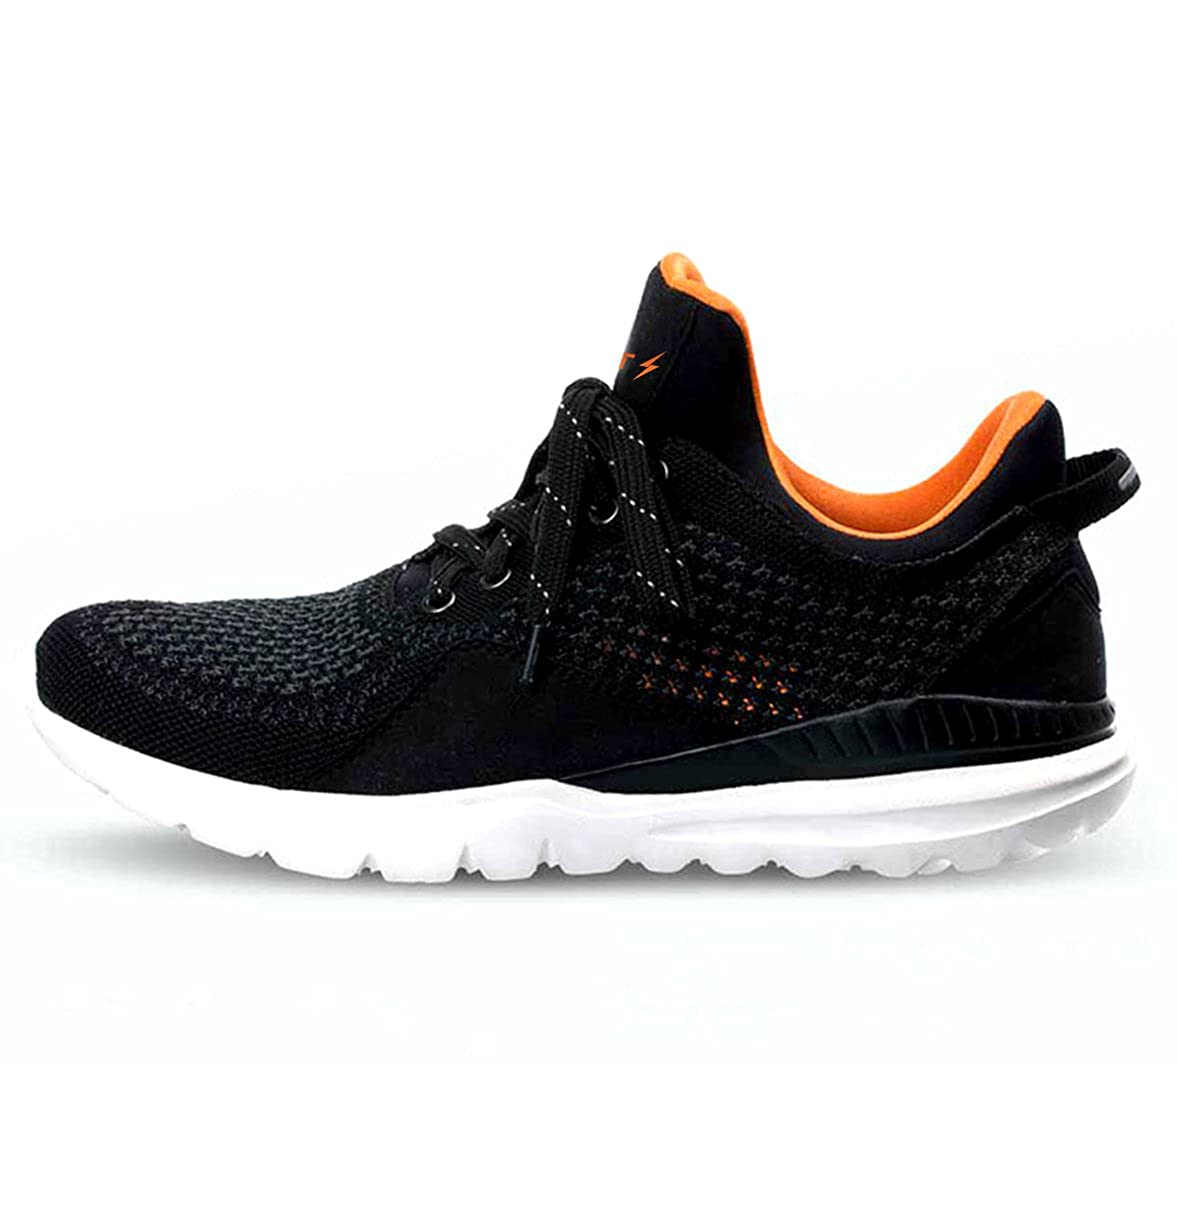 0cffda42a Boltt Men s Smart Black Running Shoes - 7 UK India (41 EU)(BSSIII0012)  Buy Online  at Low Prices in India - Amazon.in